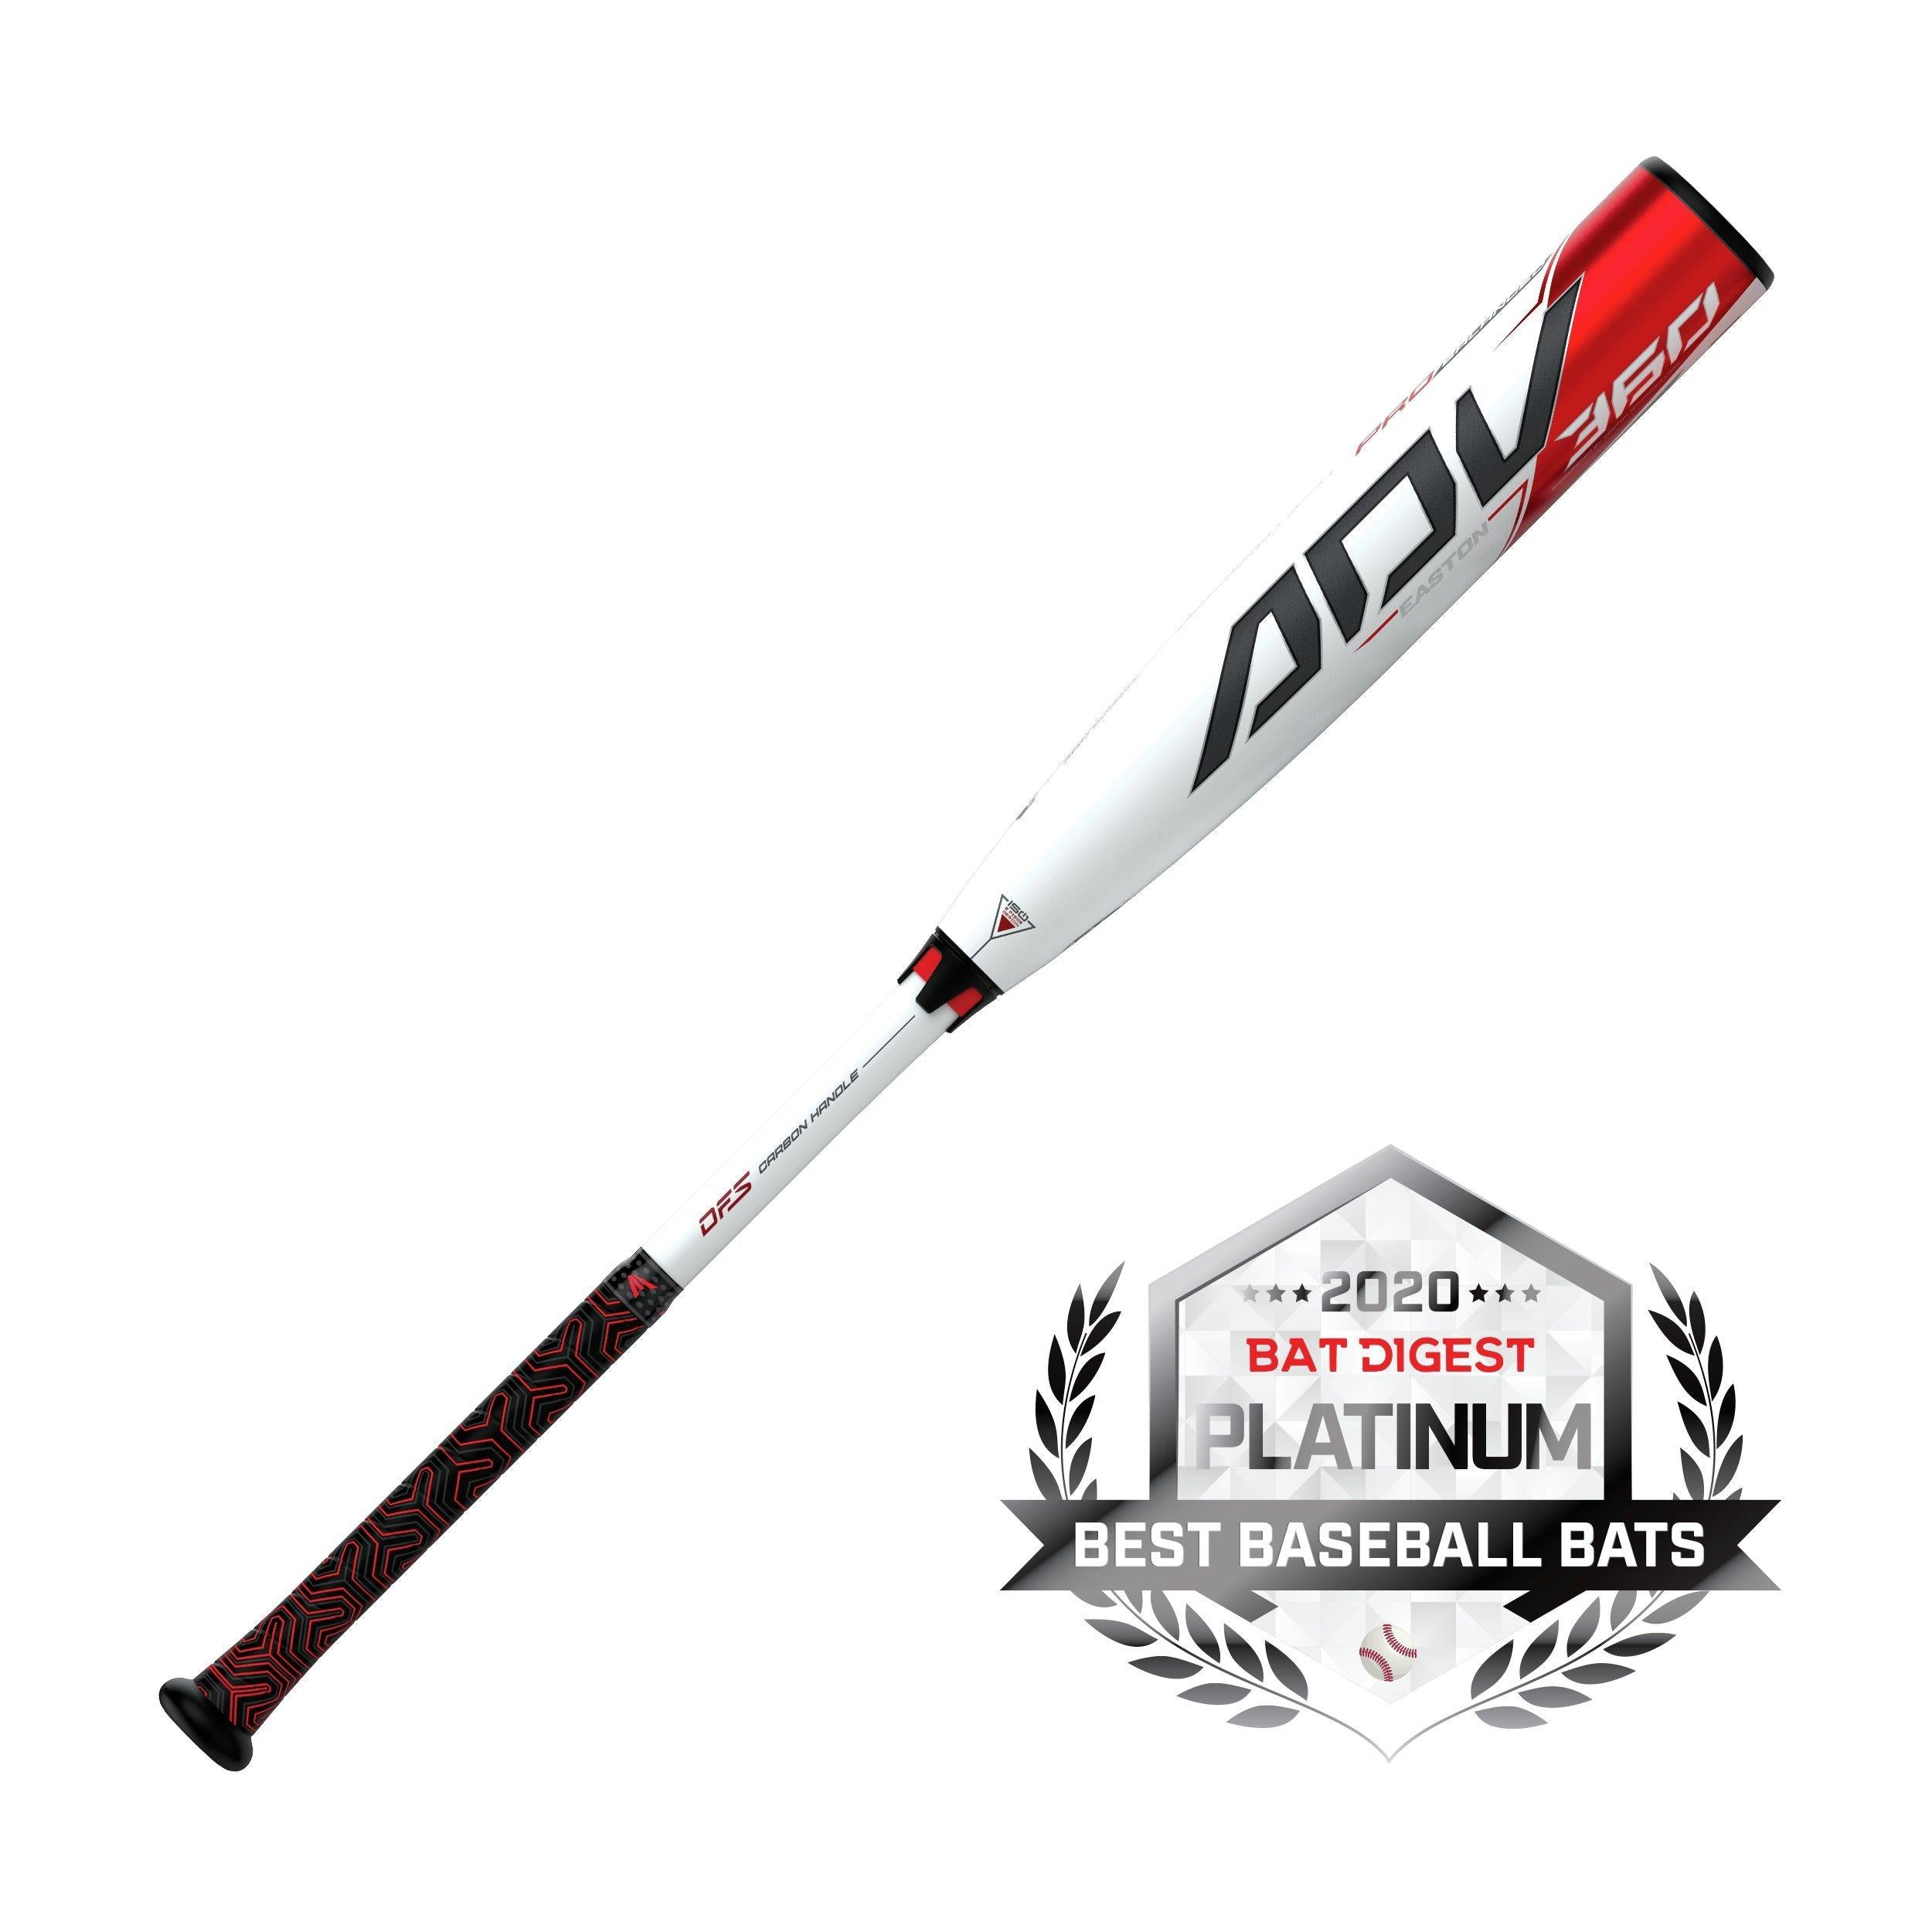 Easton ADV 360 -5 (2 5/8) - Baseball Bat - SL20ADV58 - USSSA